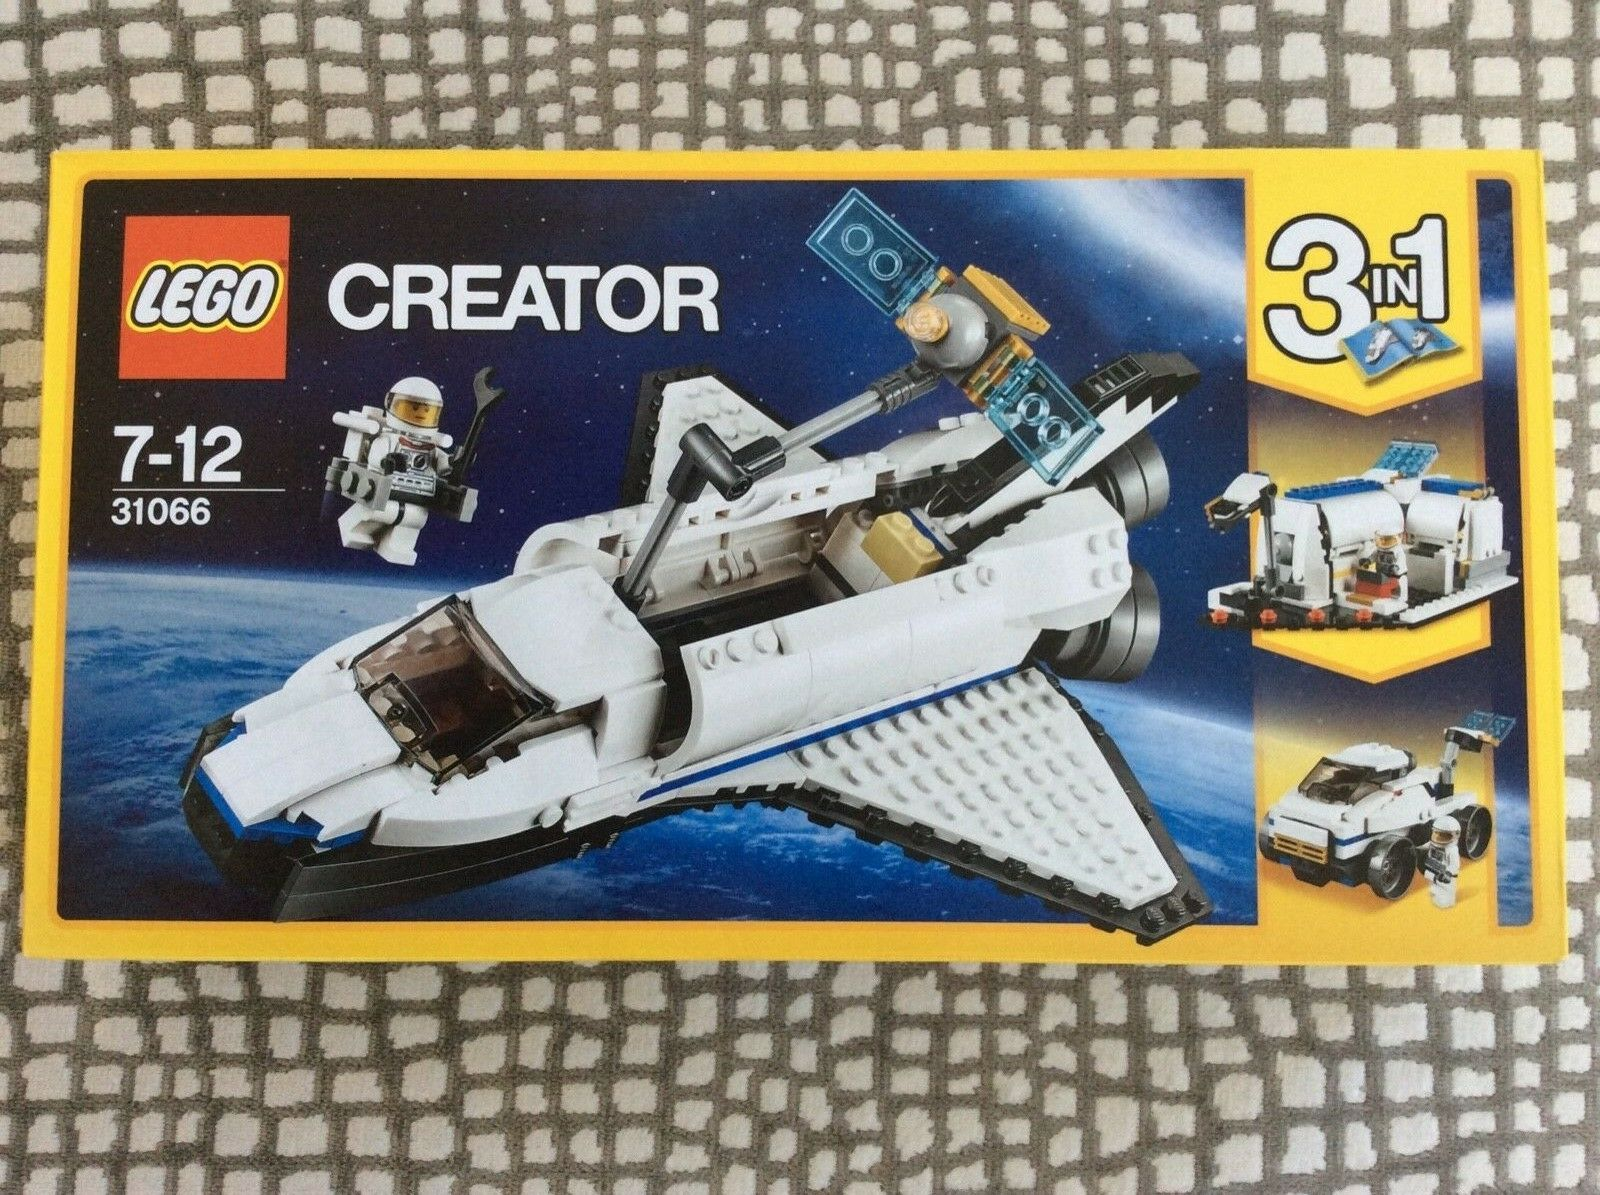 BRAND NEW Lego 31066 Creator 3-in-1 Space Shuttle Explorer, Sealed, Retired Set